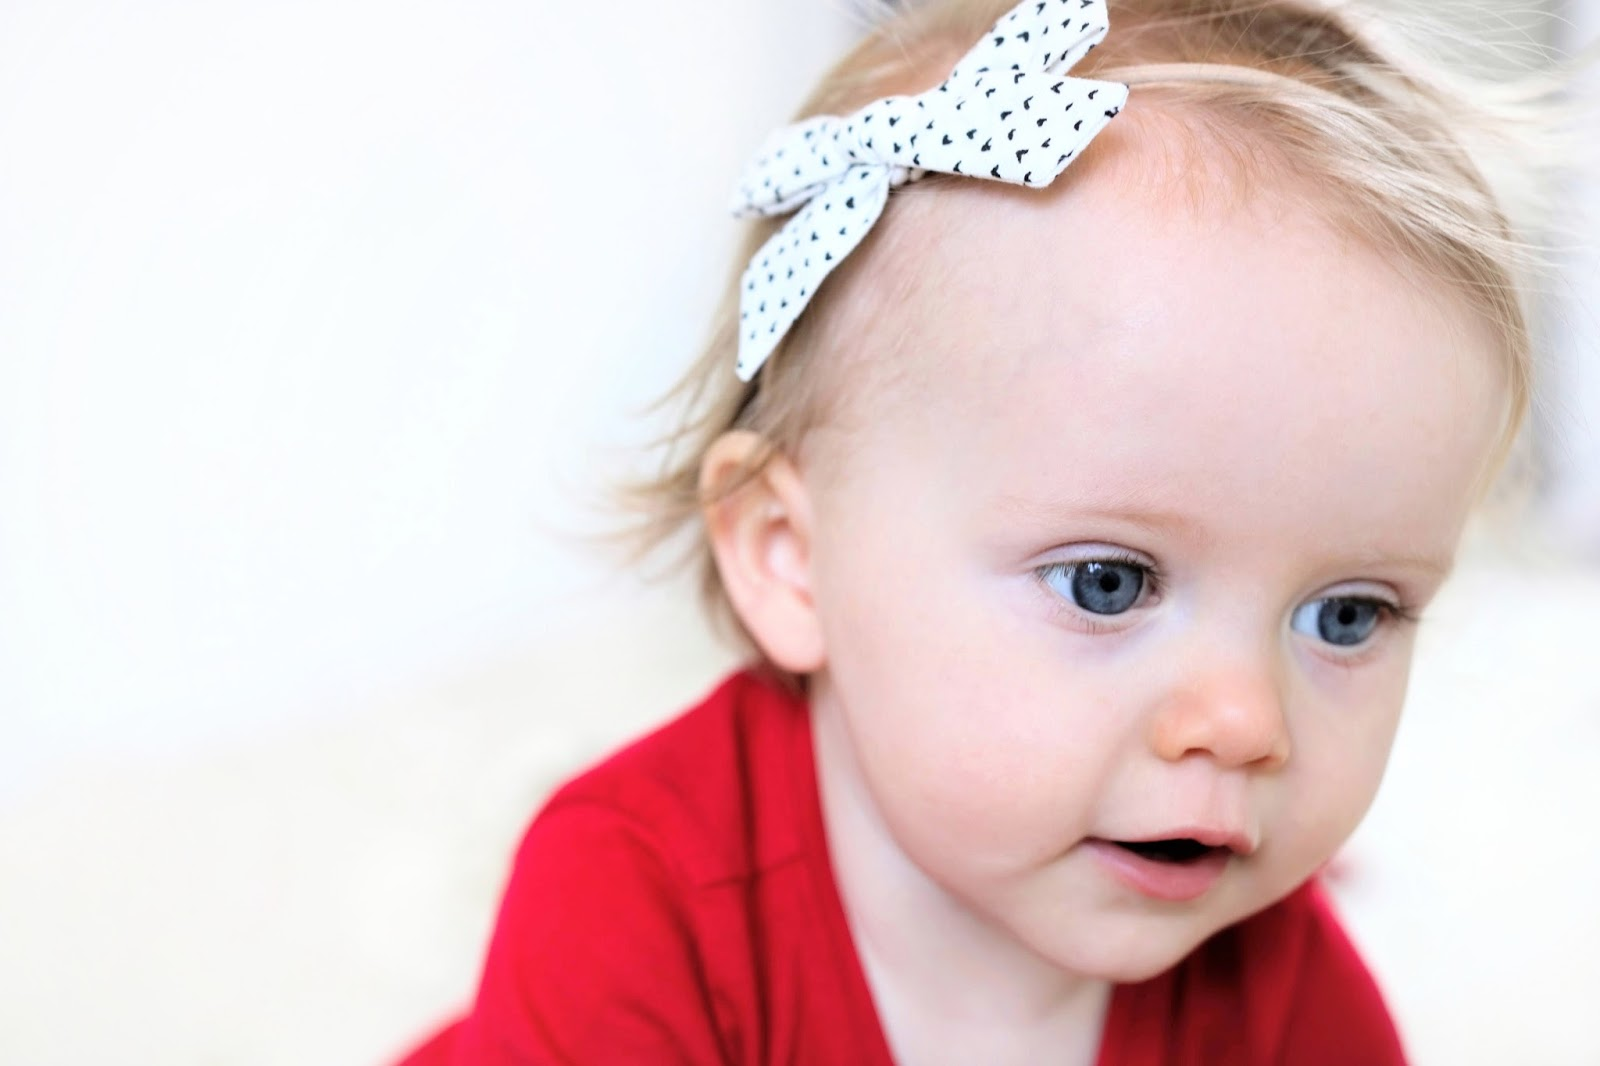 little poppy co february 2018 monthly subscription bow review bows headbands blonde baby child model blue eyes valentine